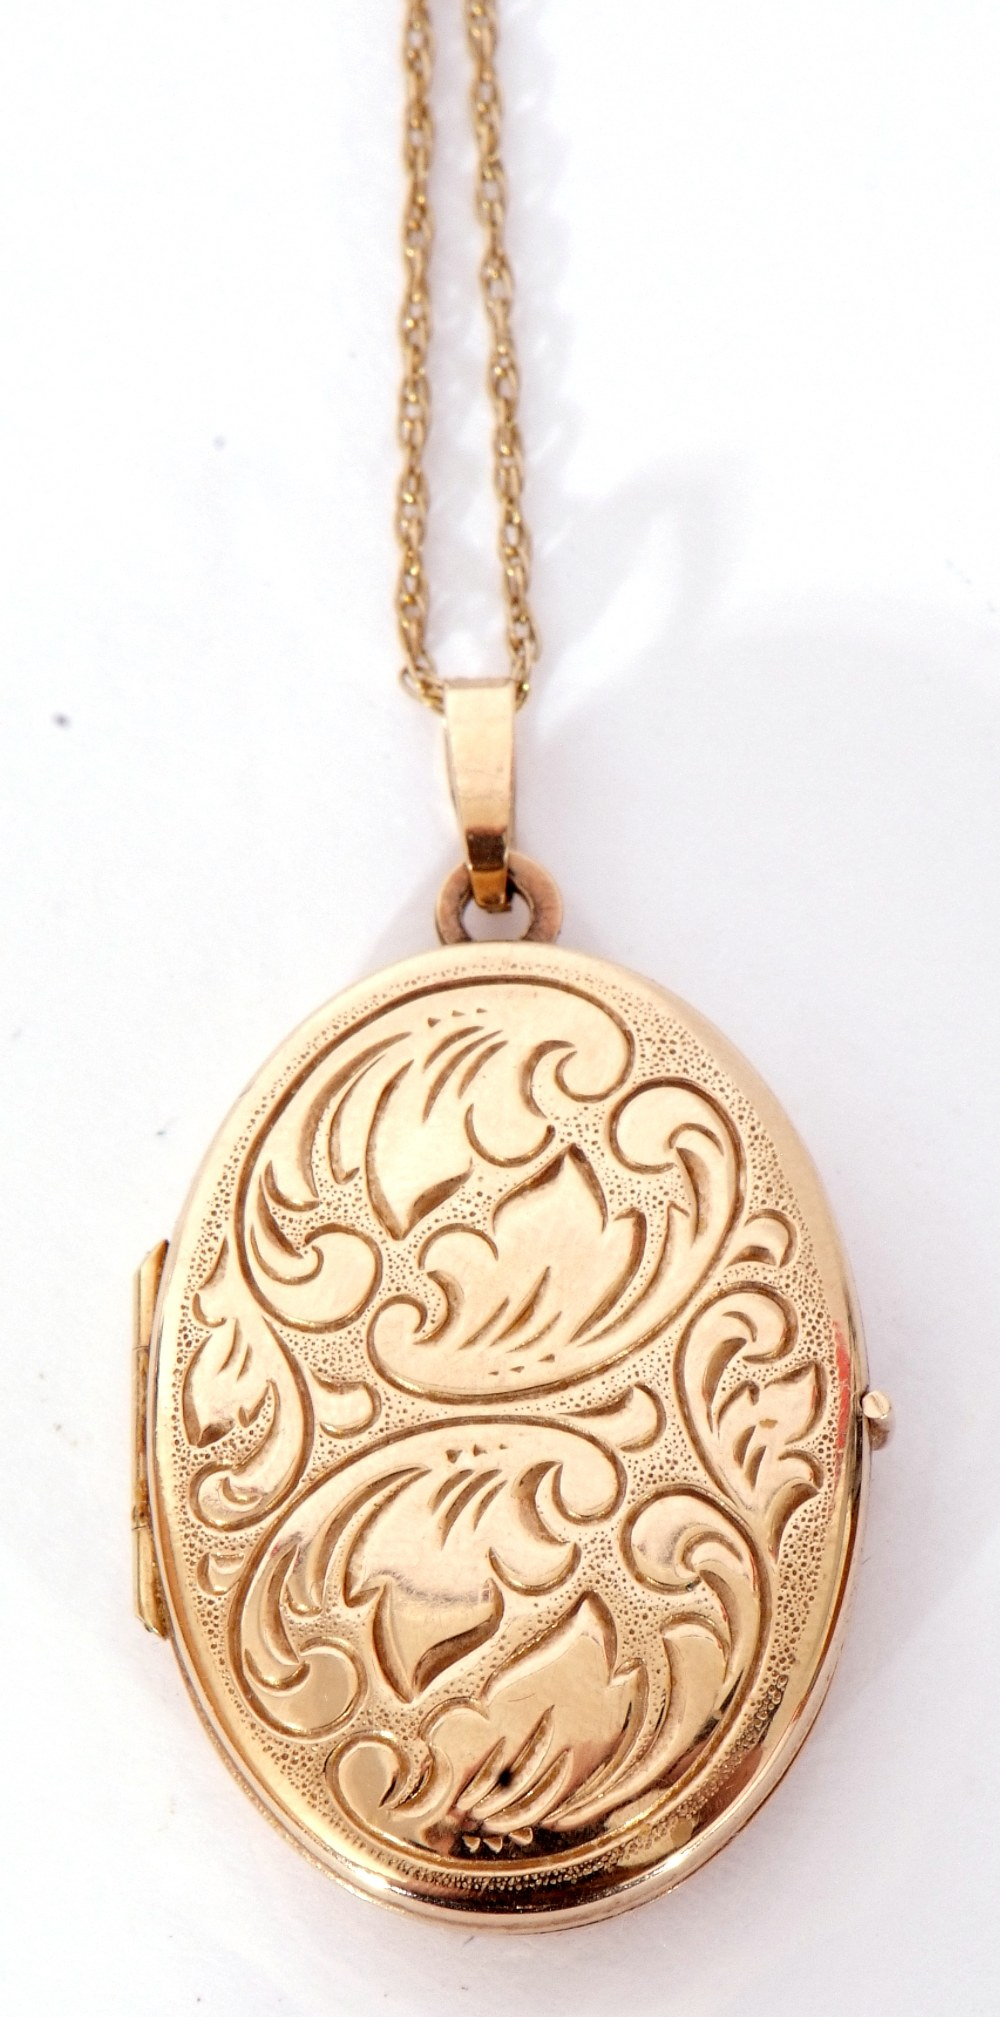 Modern oval yellow metal hinged locket, the front with engraved detail, burnished verso, suspended - Image 2 of 4